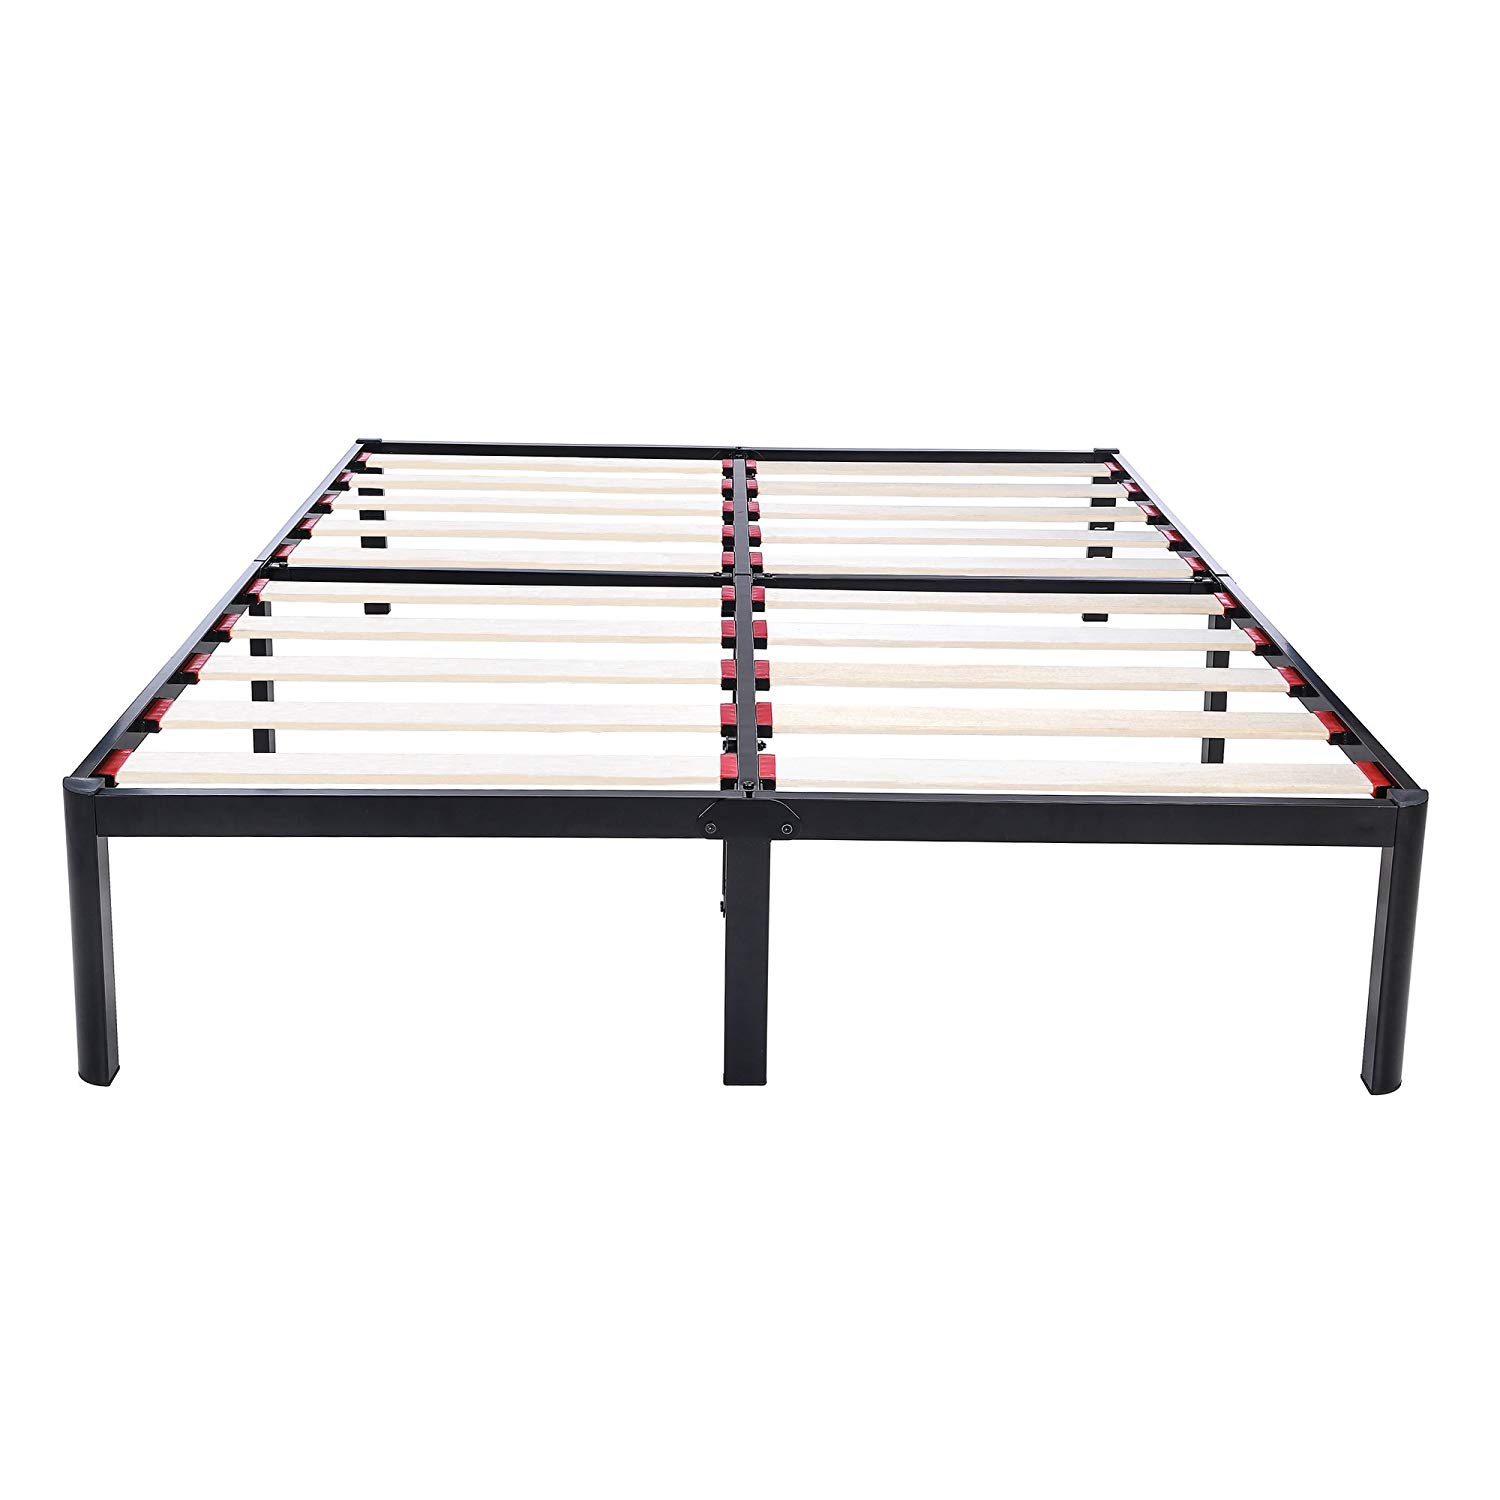 Cheap Bed Boxspring Find Bed Boxspring Deals On Line At Alibaba Com